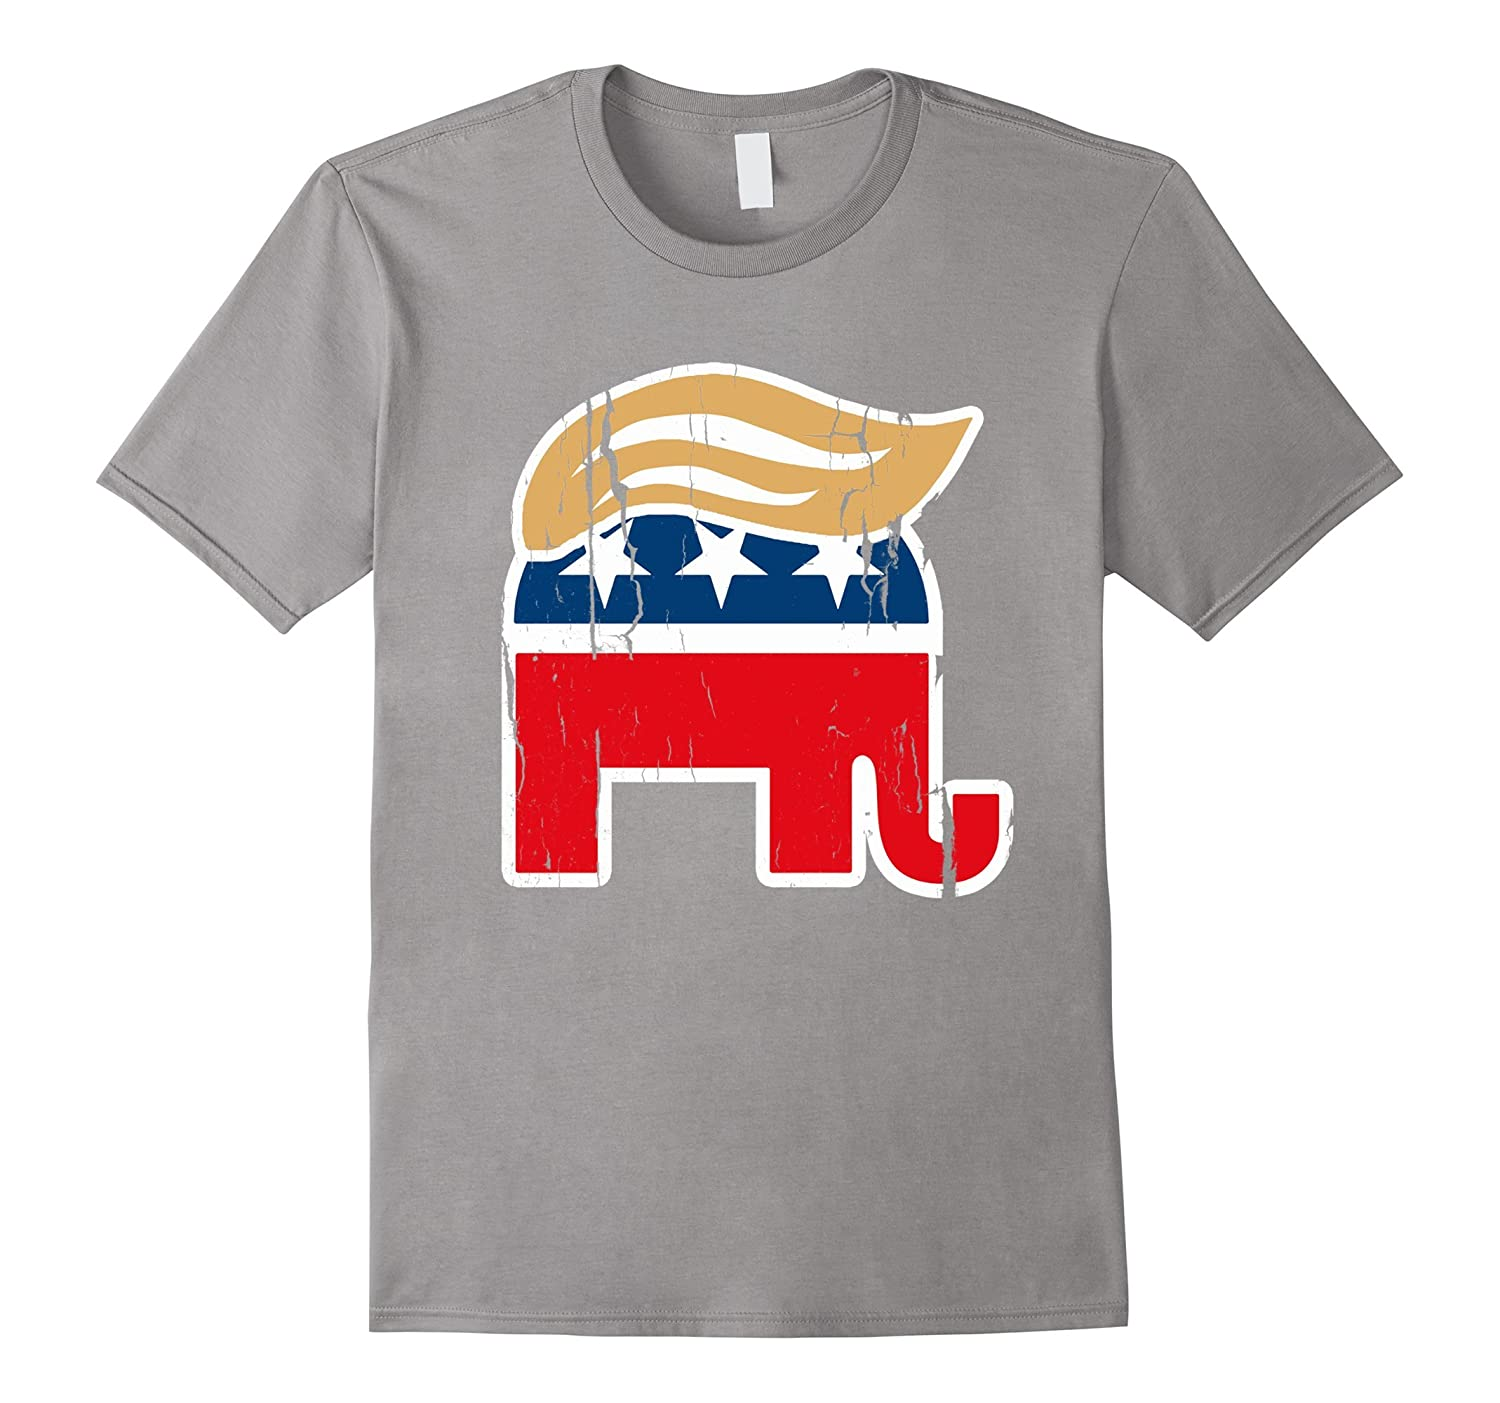 ORIGINAL AUTHENTIC Donald Trump Elephant T-shirt Shirt-CD